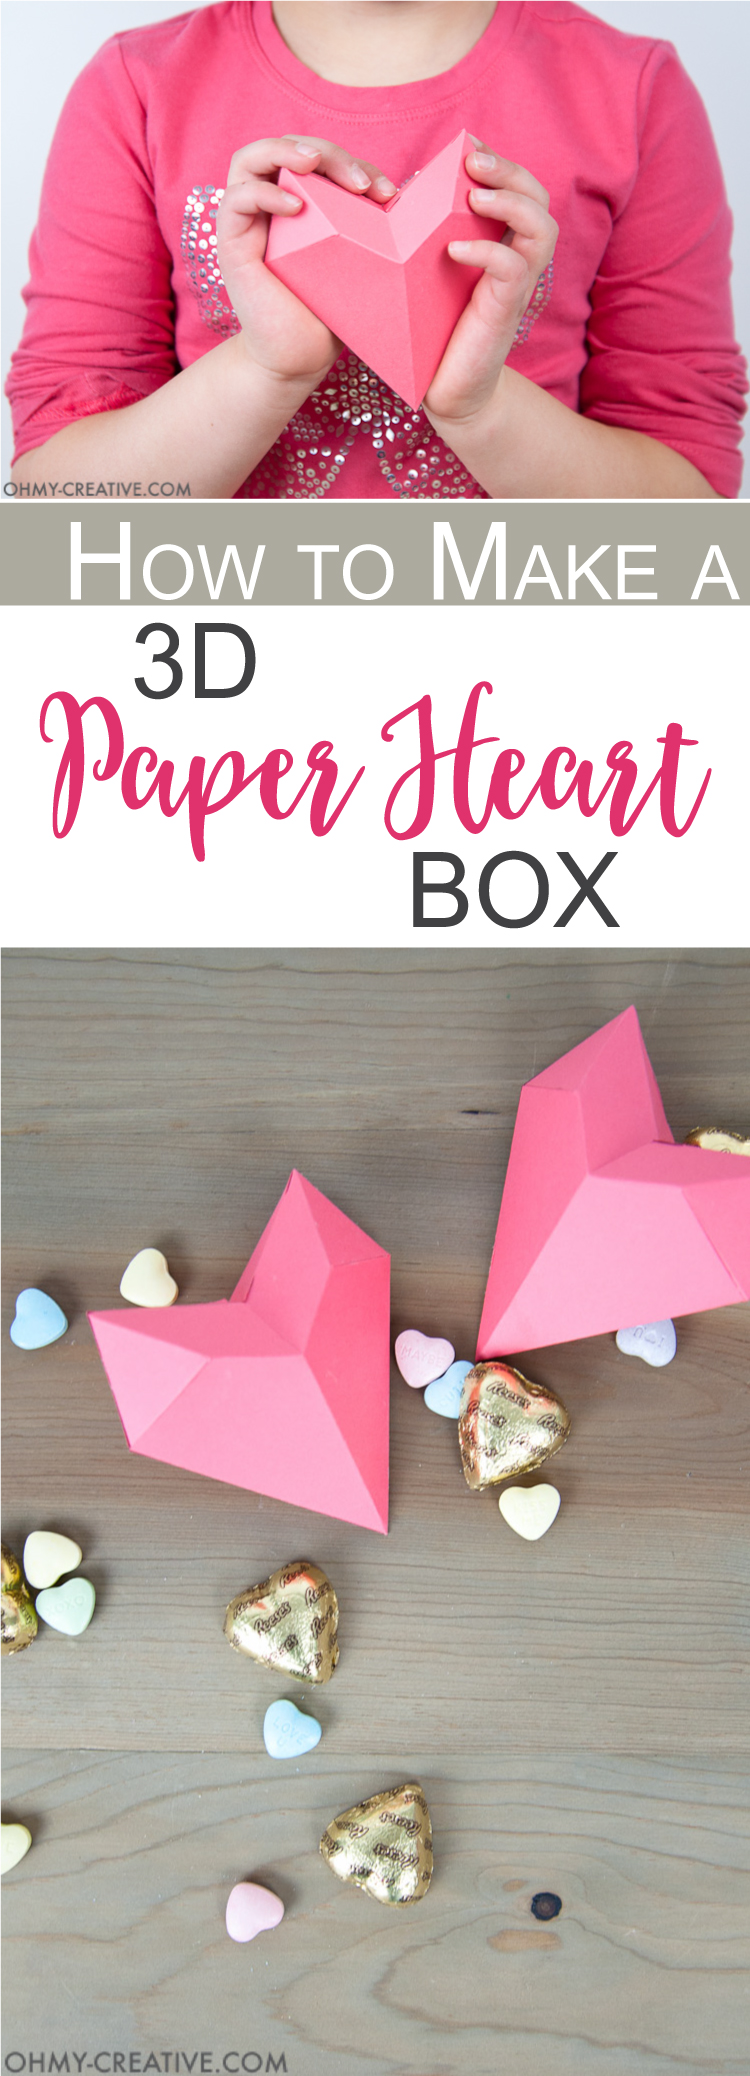 An Origami Heart Box -Perfect for Valentine's | 2076x750